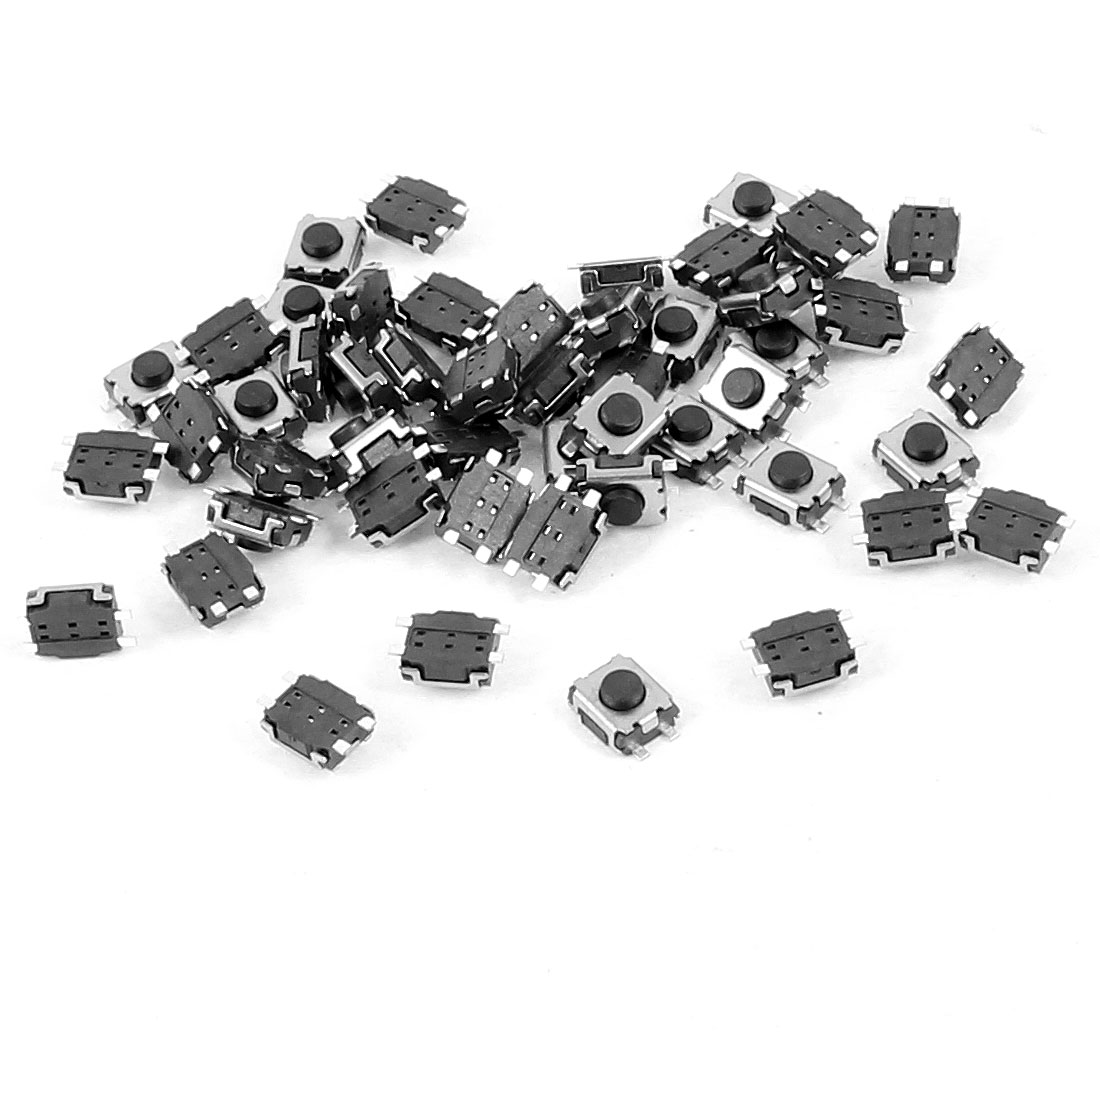 50 Pcs 4mm x 3mm 4 Pins SMD SMT Ultrathin Momentary Push Button Tact Switch